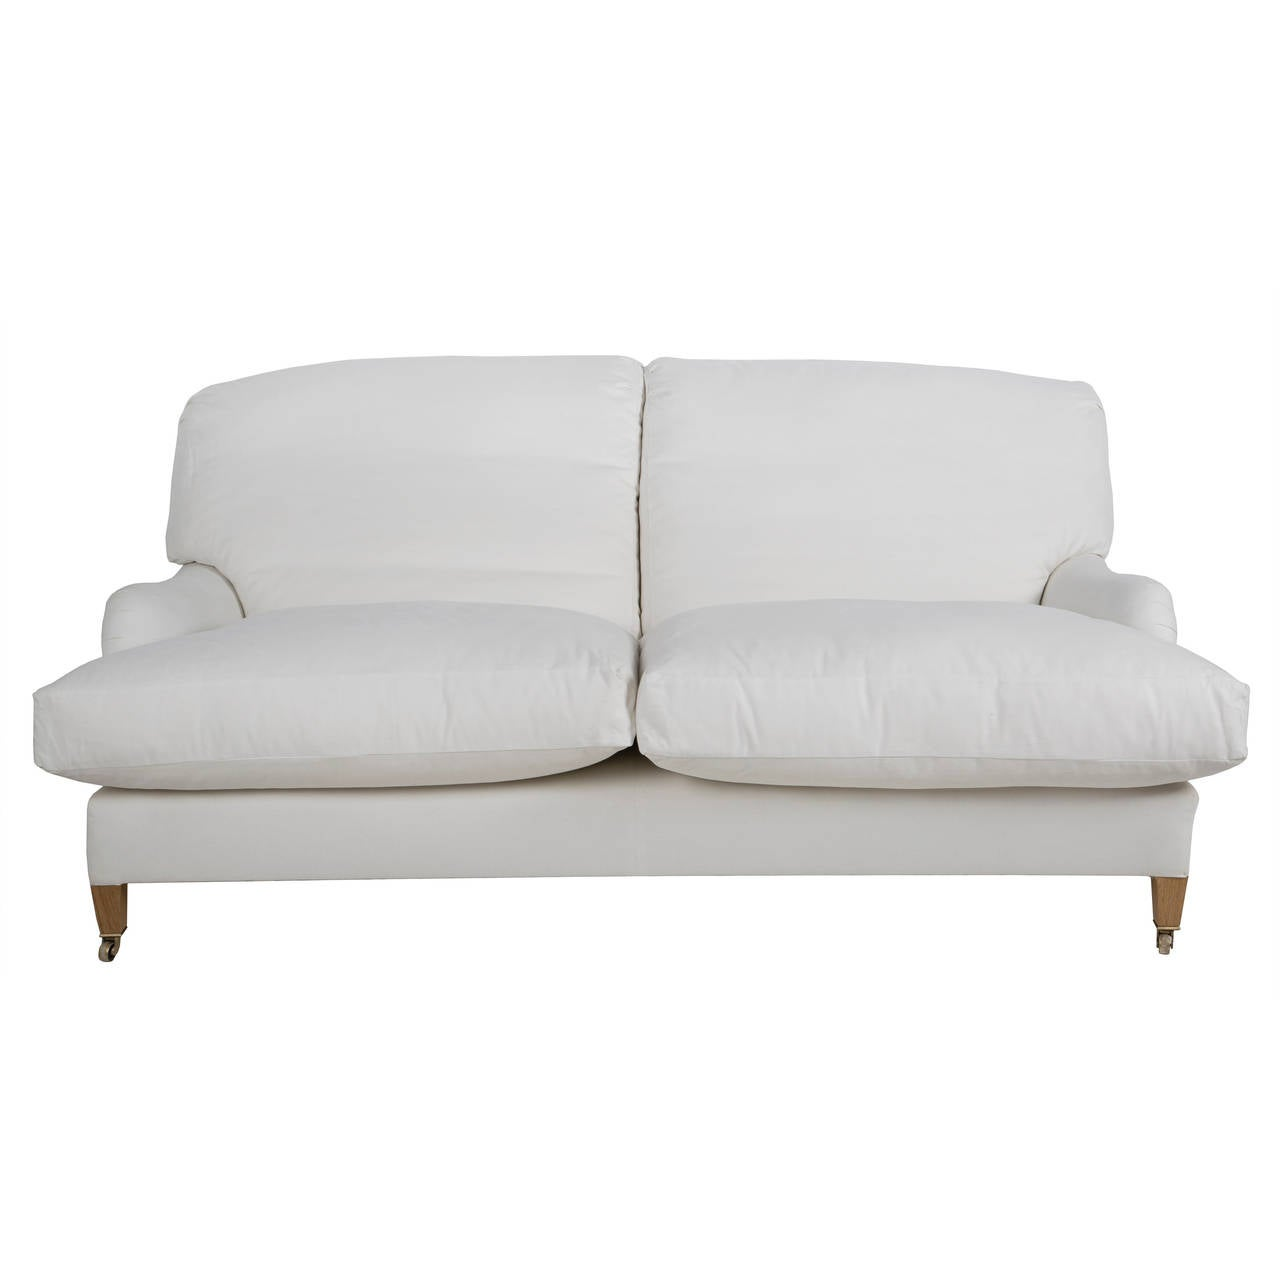 kingston sofa for sale at 1stdibs With sectional sofas kingston